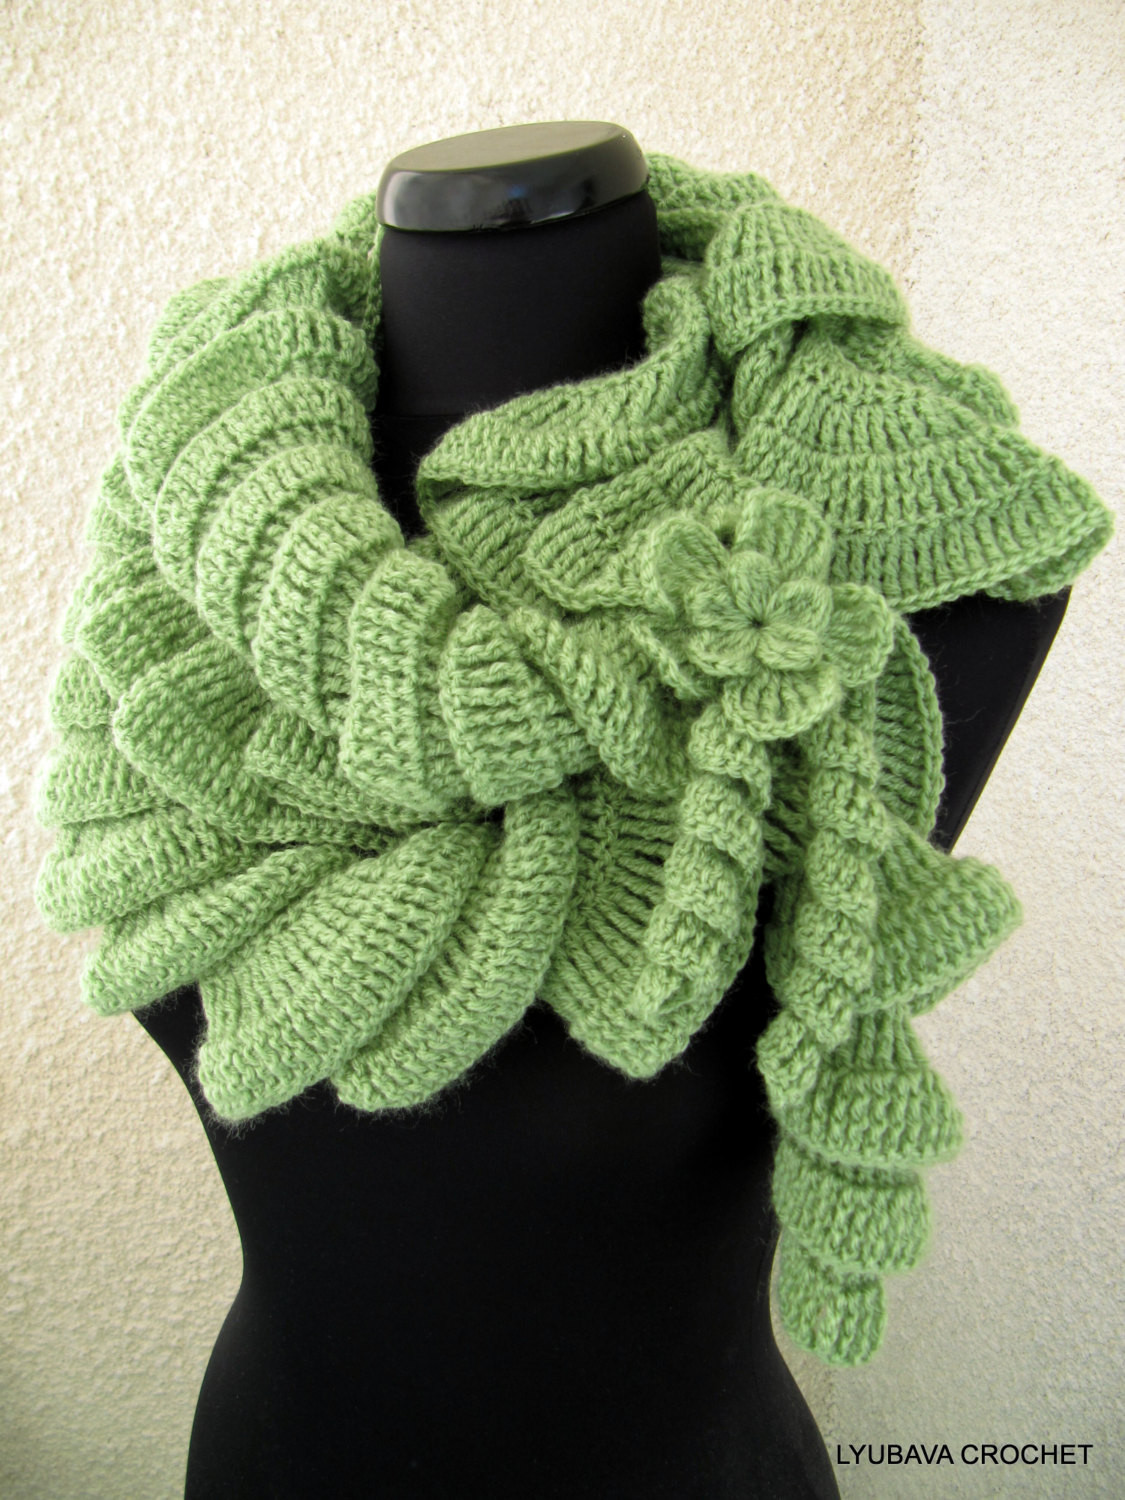 Awesome Crochet Ruffle Scarf Free Pattern Crochet and Knit Free Quick and Easy Crochet Scarf Patterns Of Wonderful 42 Photos Free Quick and Easy Crochet Scarf Patterns